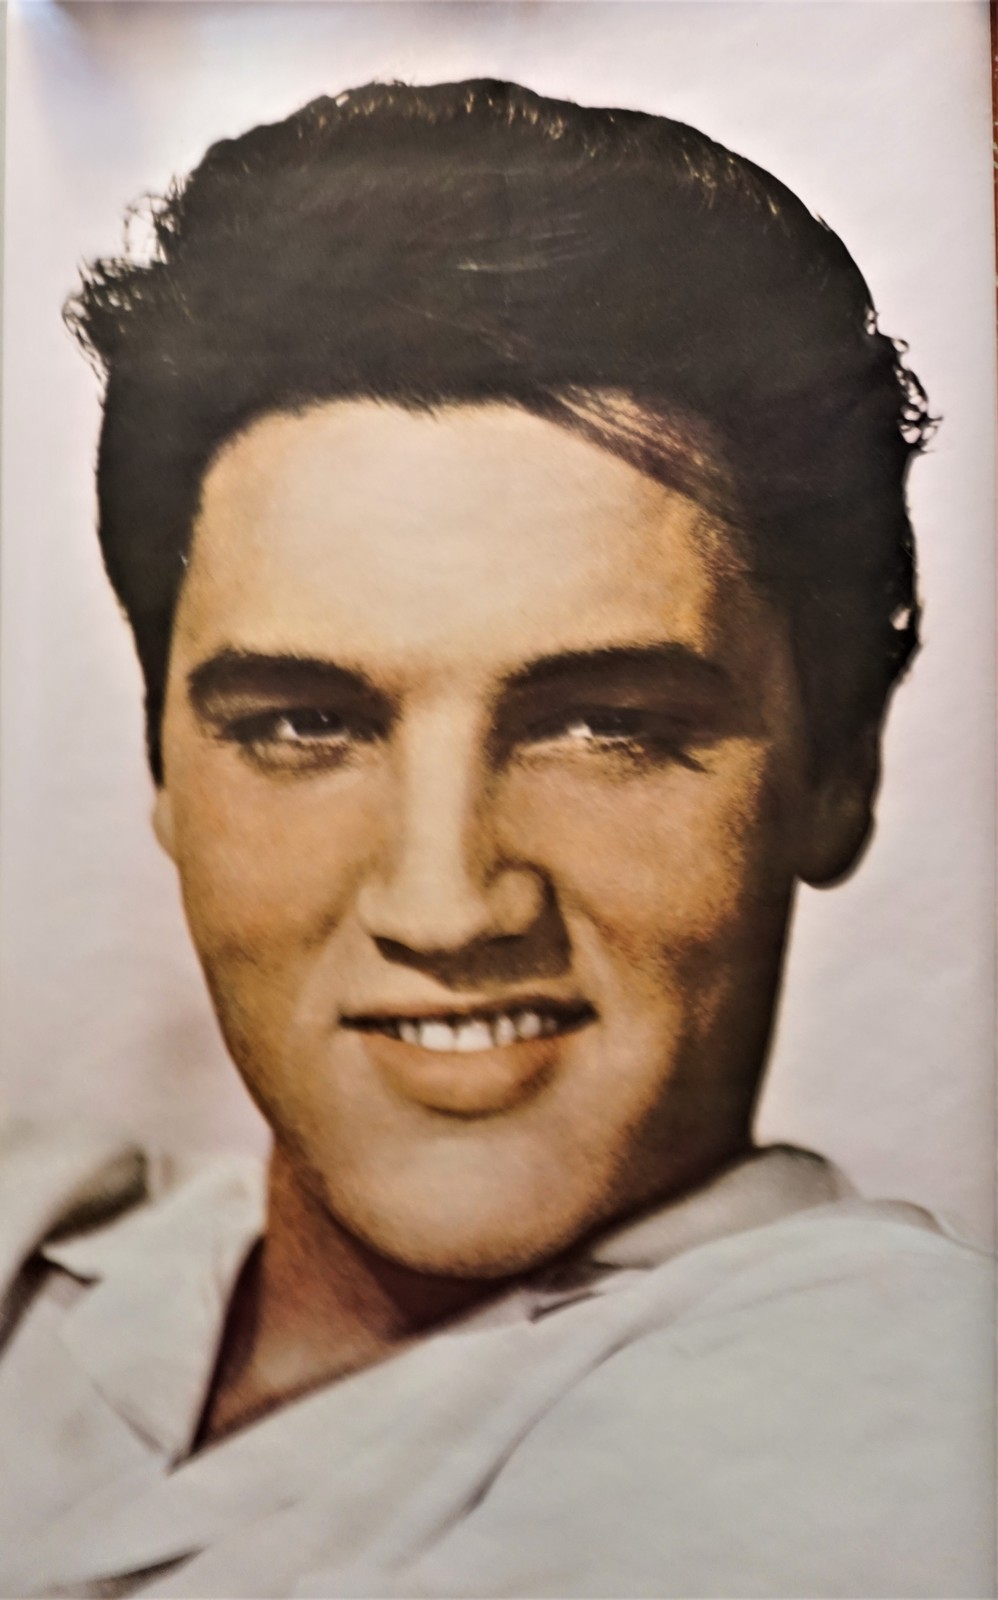 Primary image for Elvis Presley 1985 Door Size Pin Up Poster Color